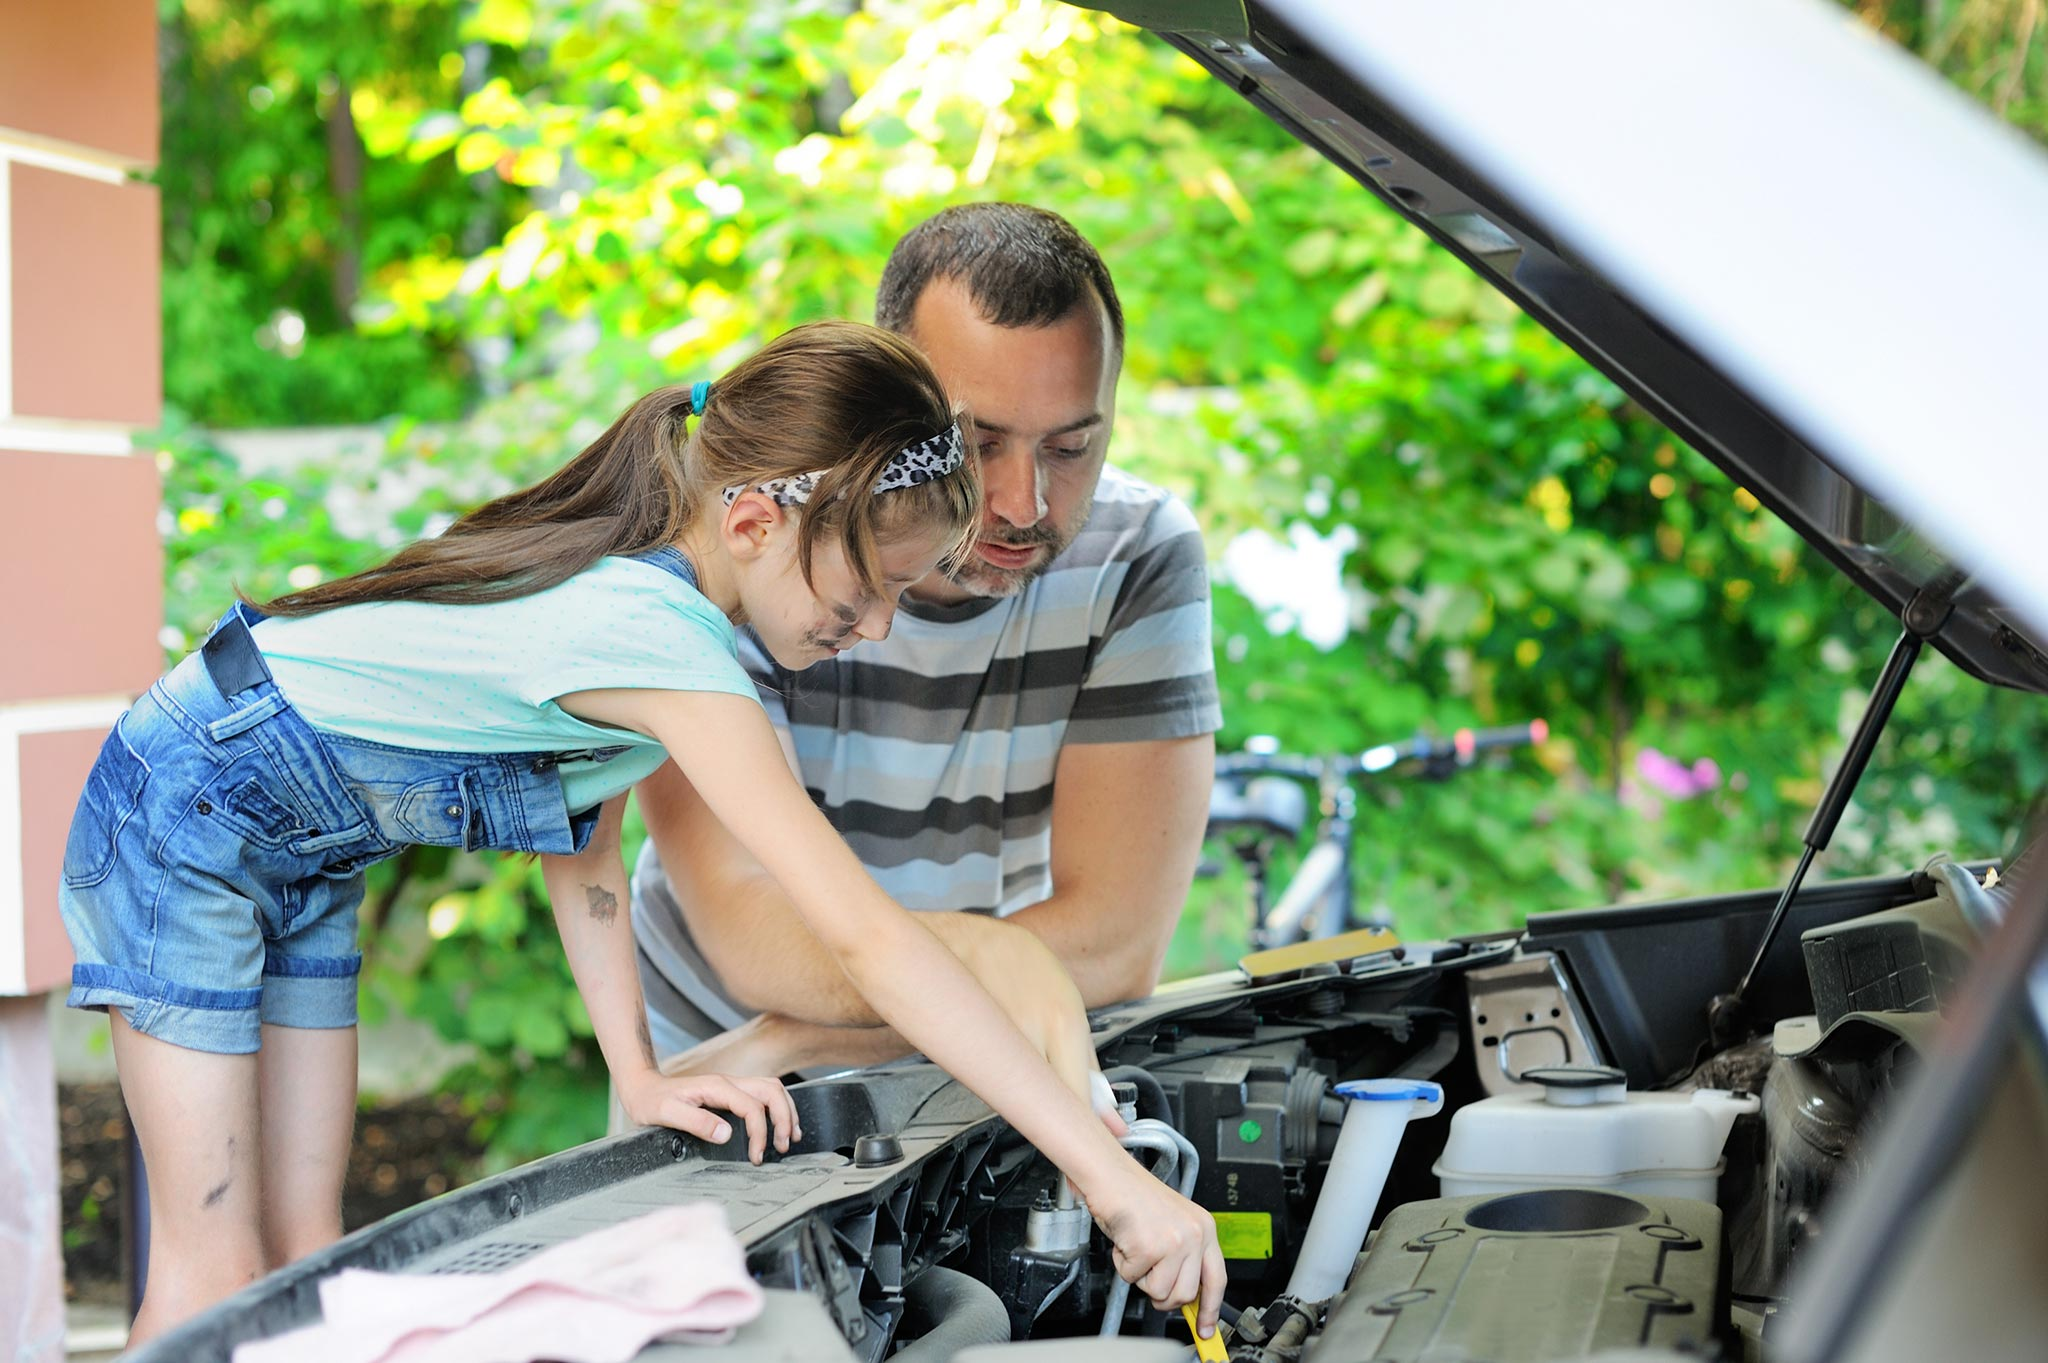 Young girl and father changing car battery